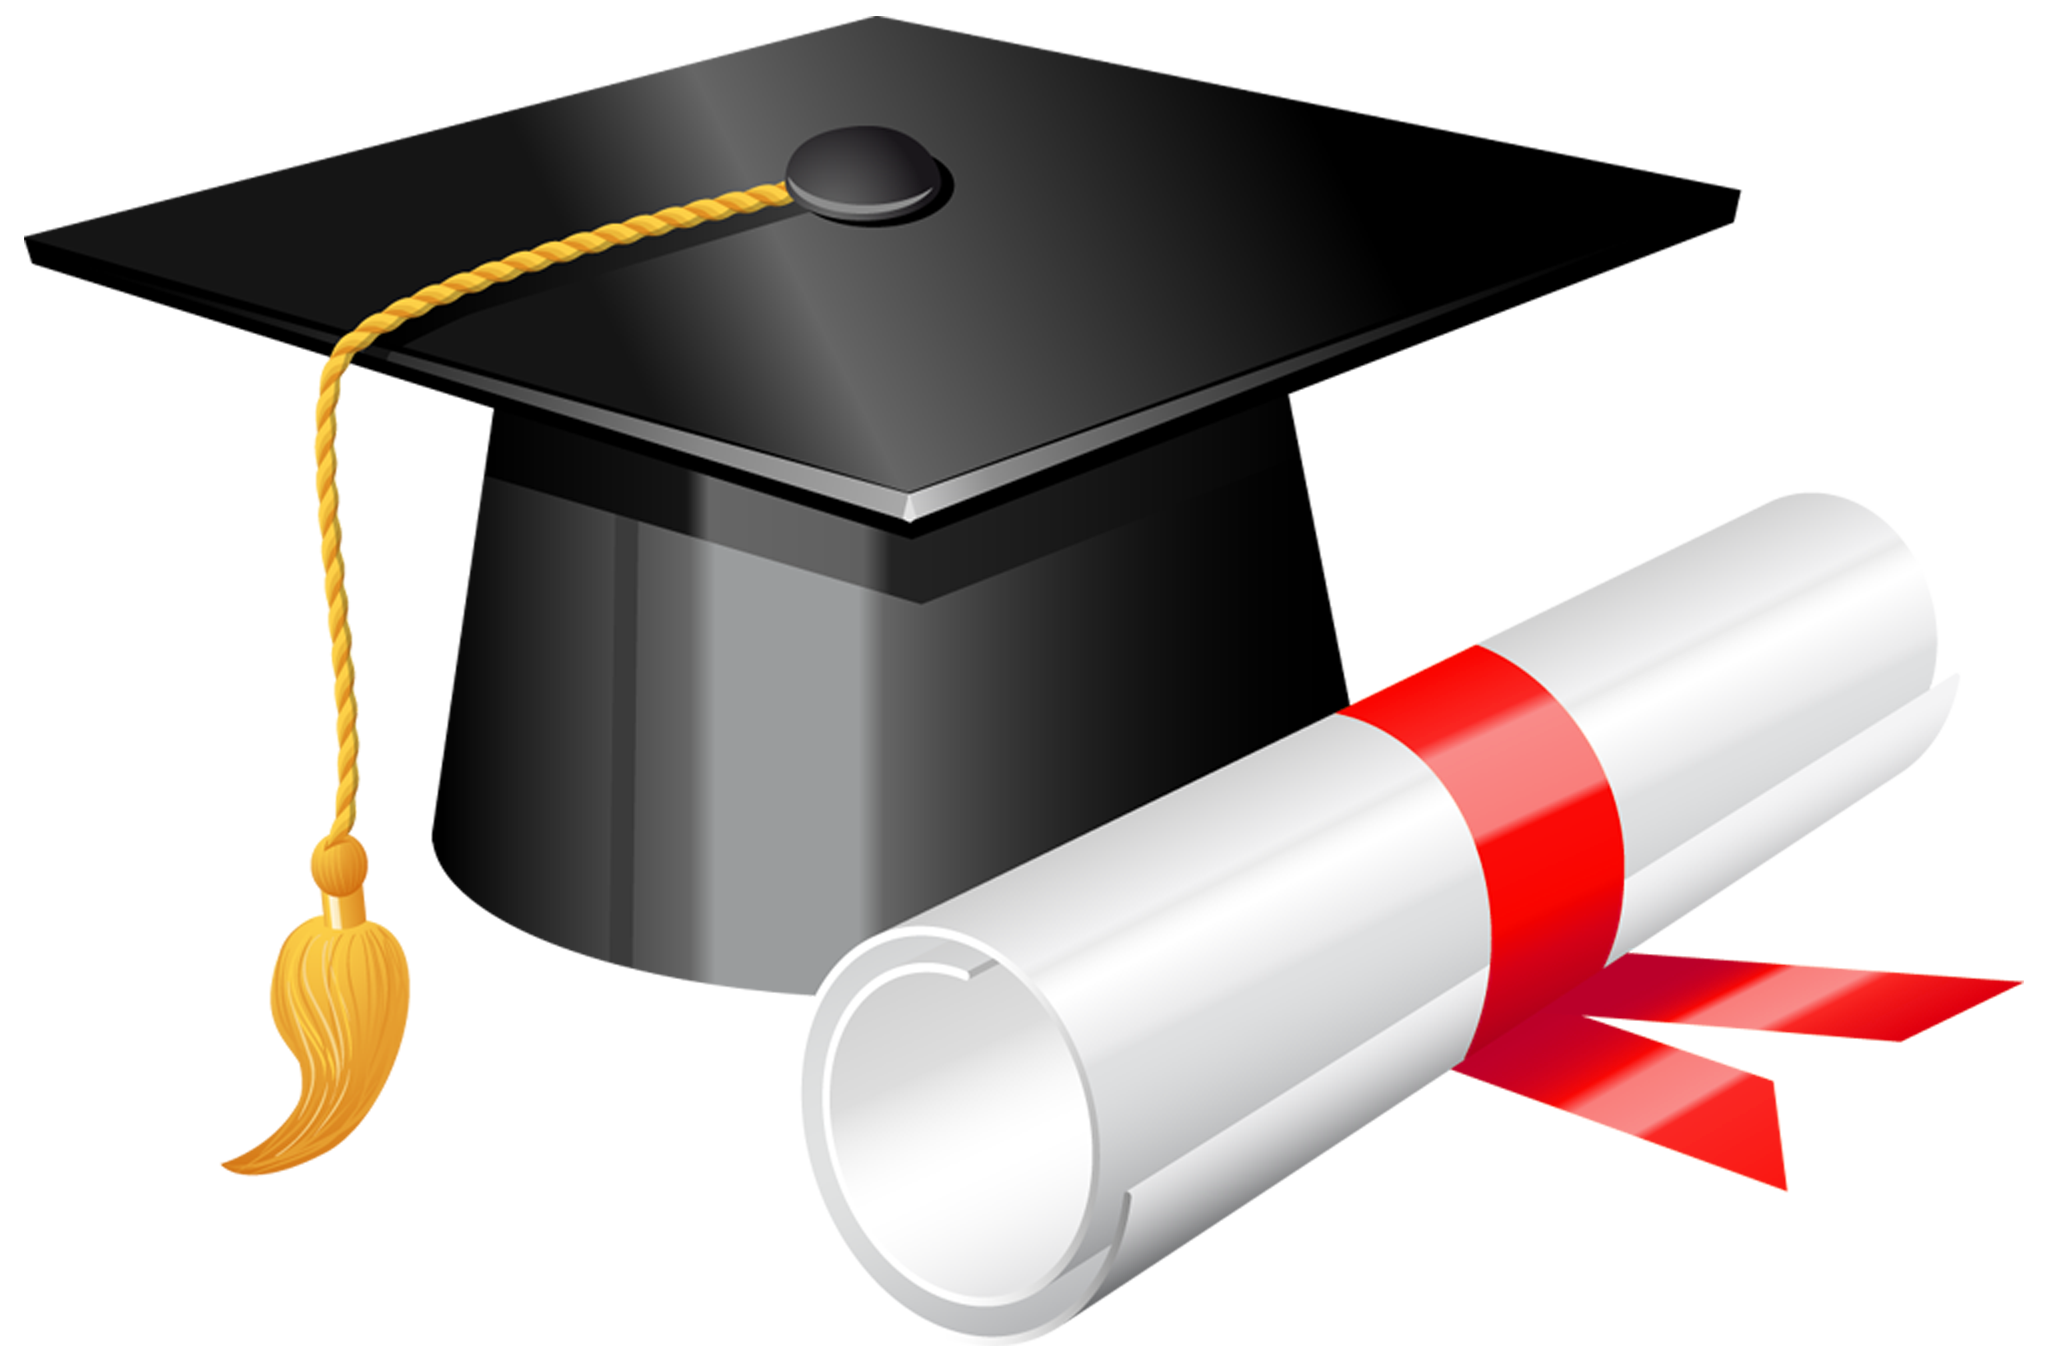 Graduation cap with diploma. Future clipart grad